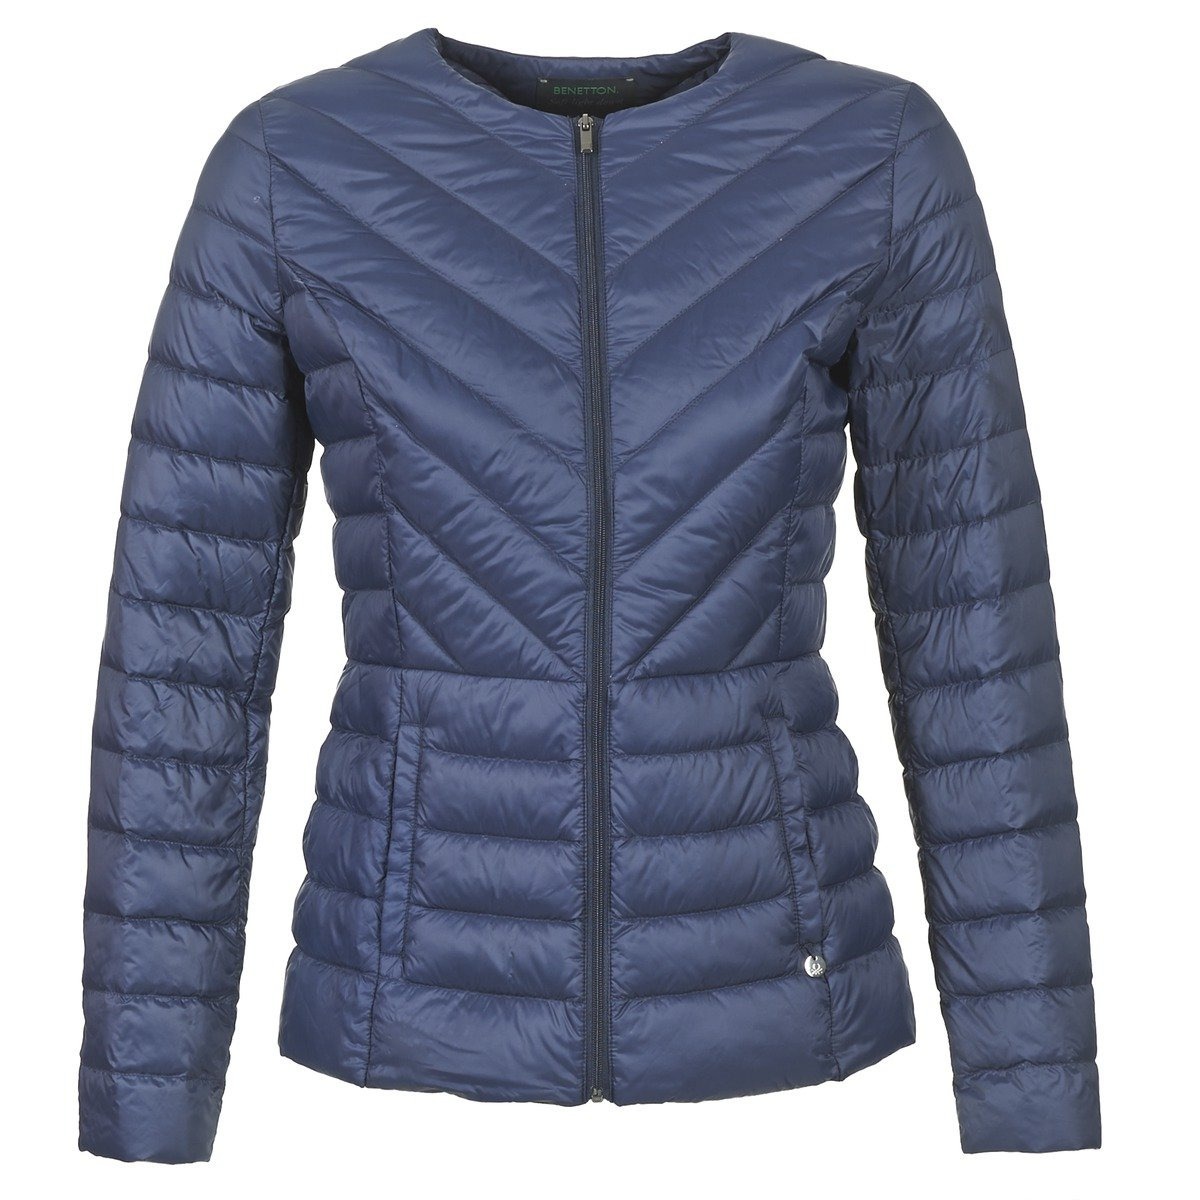 United Colors of Benetton Chaqueta para Mujer